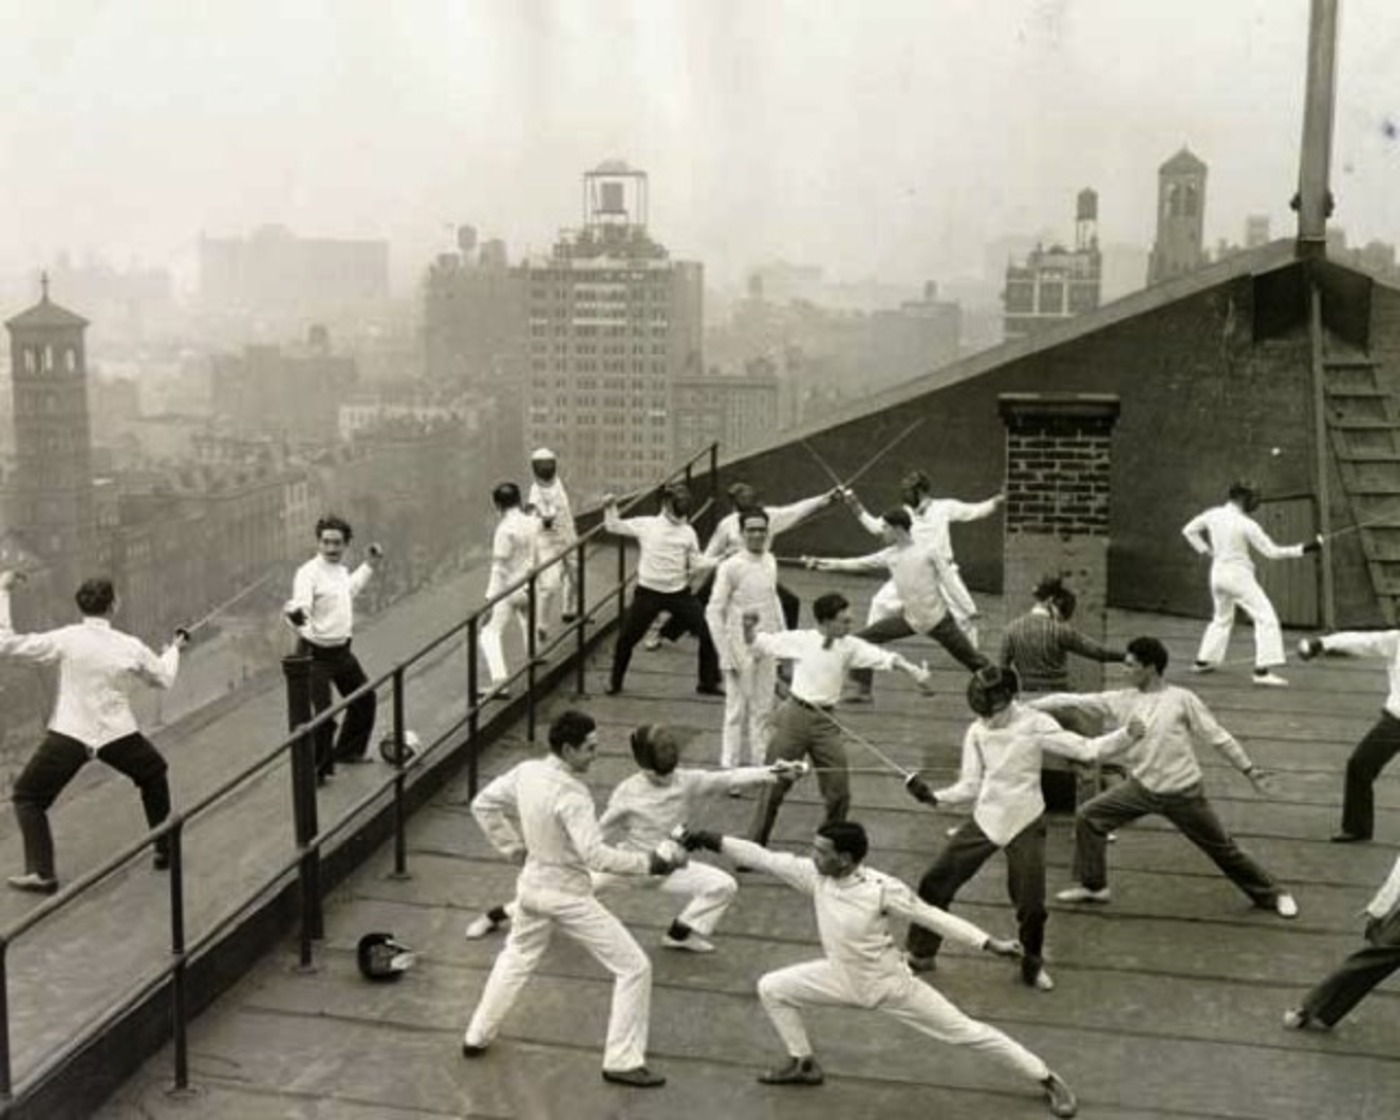 Check Out This Vintage Photograph Of Nyu Students Fencing